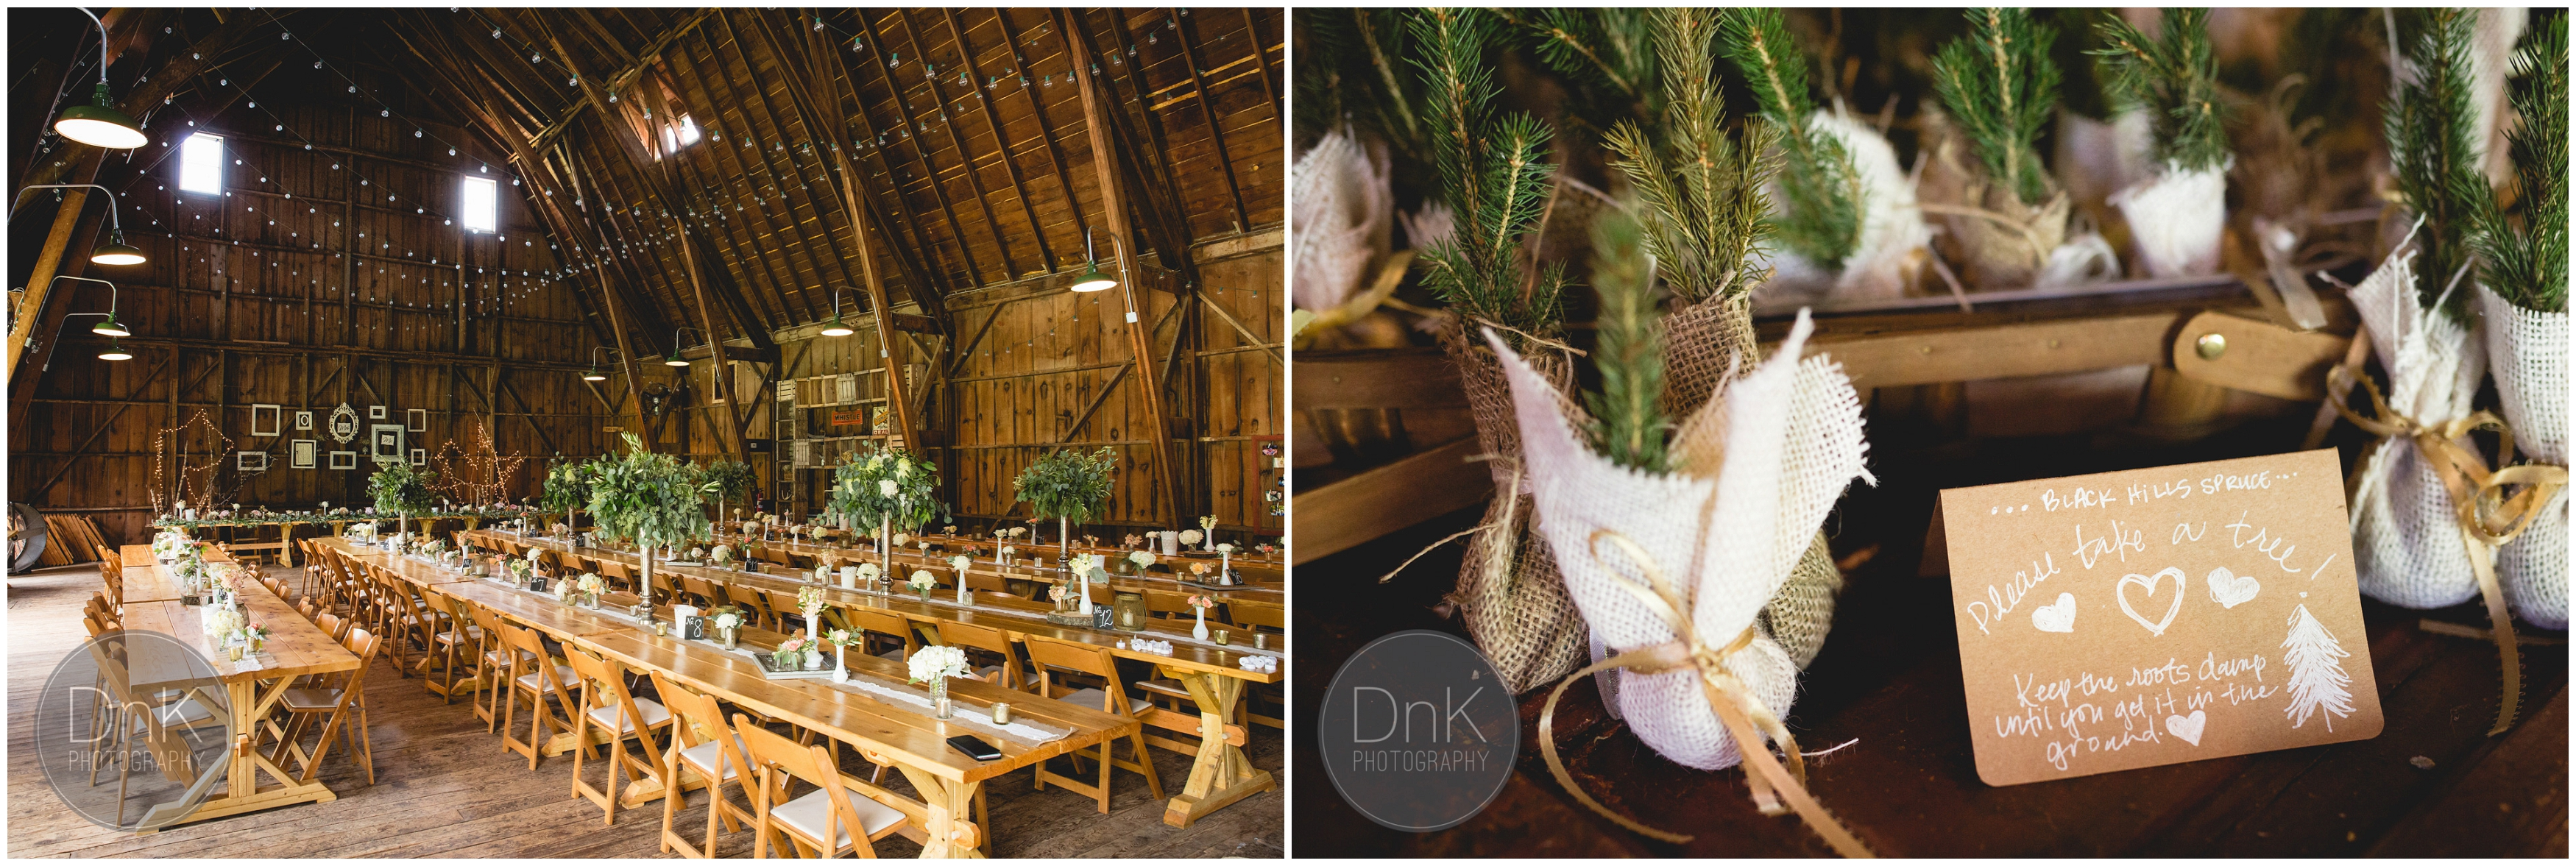 10 - Dellwood Barn Wedding Pictures